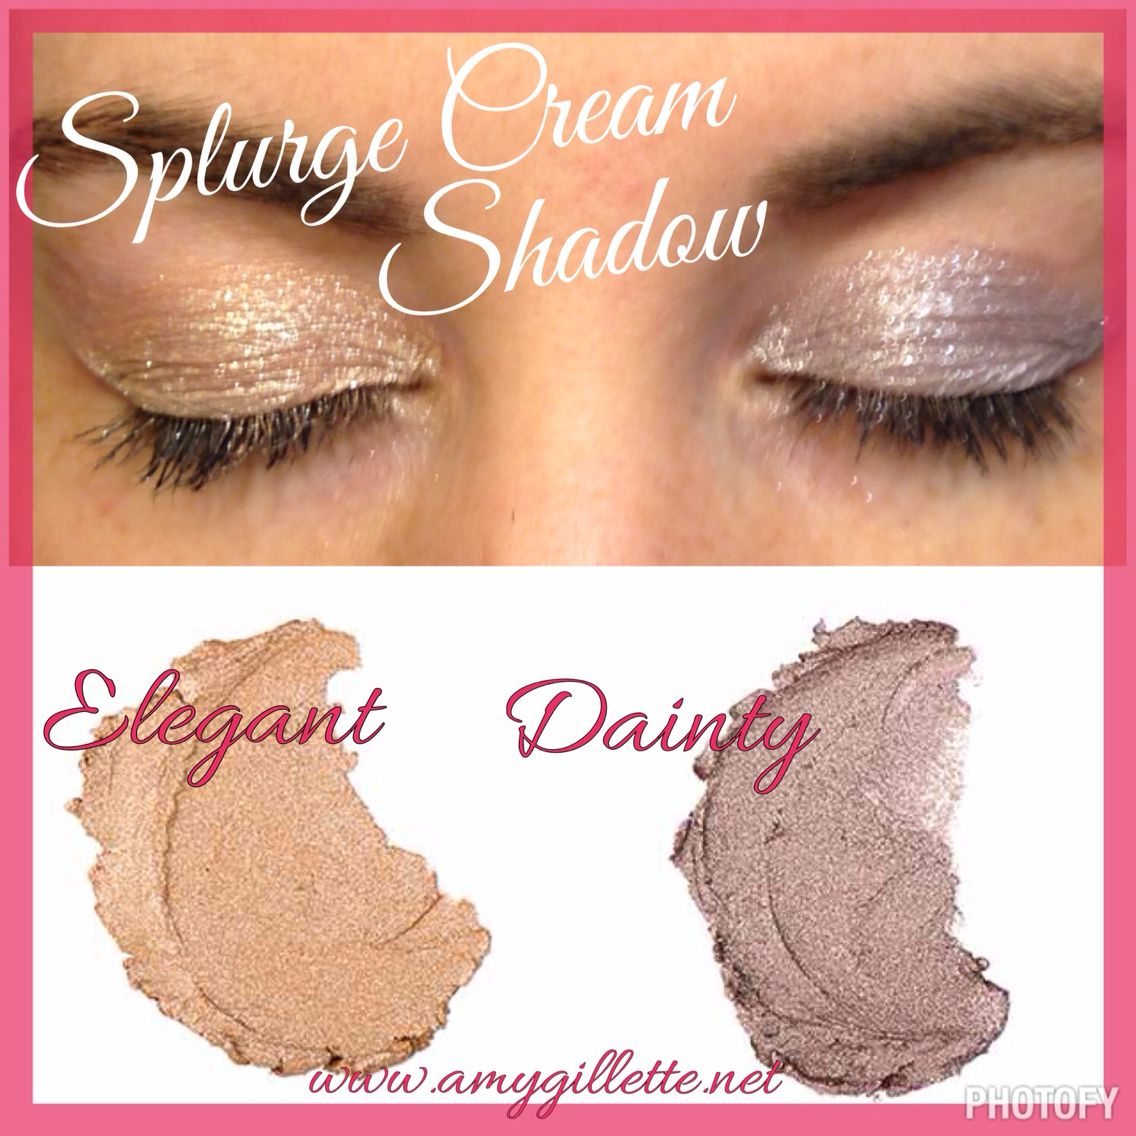 Younique Splurge Cream Shadow www.youniqueproducts.com/StellaGolding